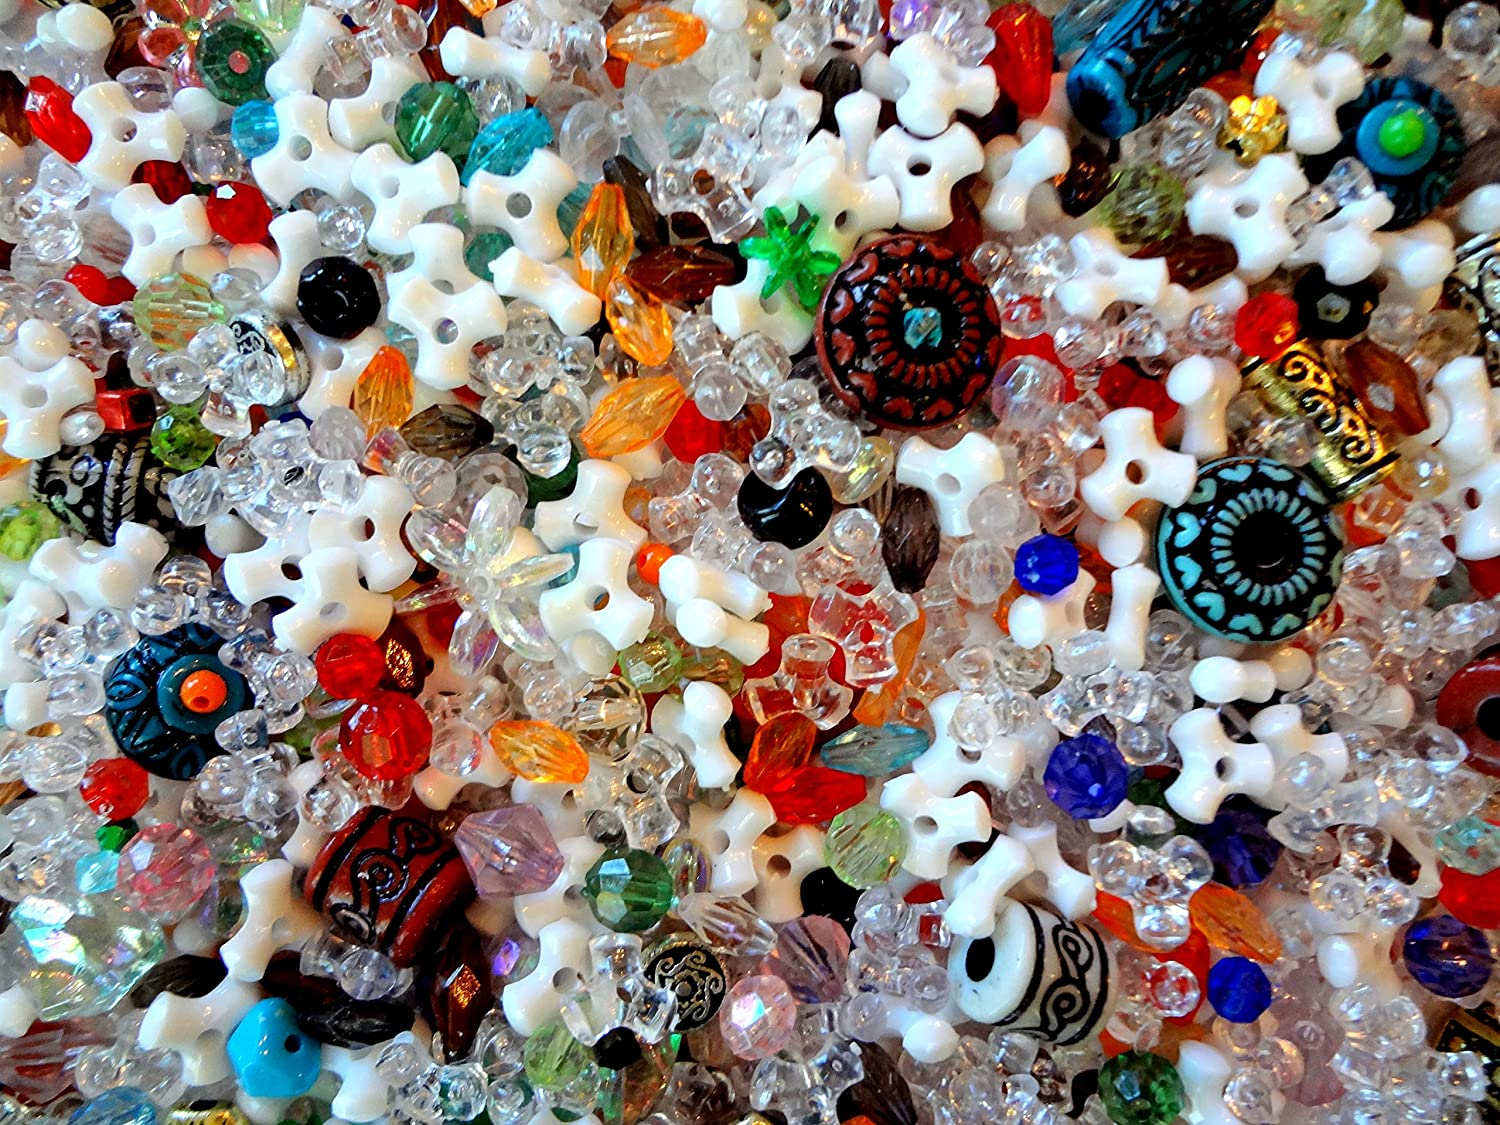 Plasstic Beads Bulk  Beads For Jewelry Making  Assorted beads 5 to 14mm /_0.5lb per Bag /_ 3 Styles Available